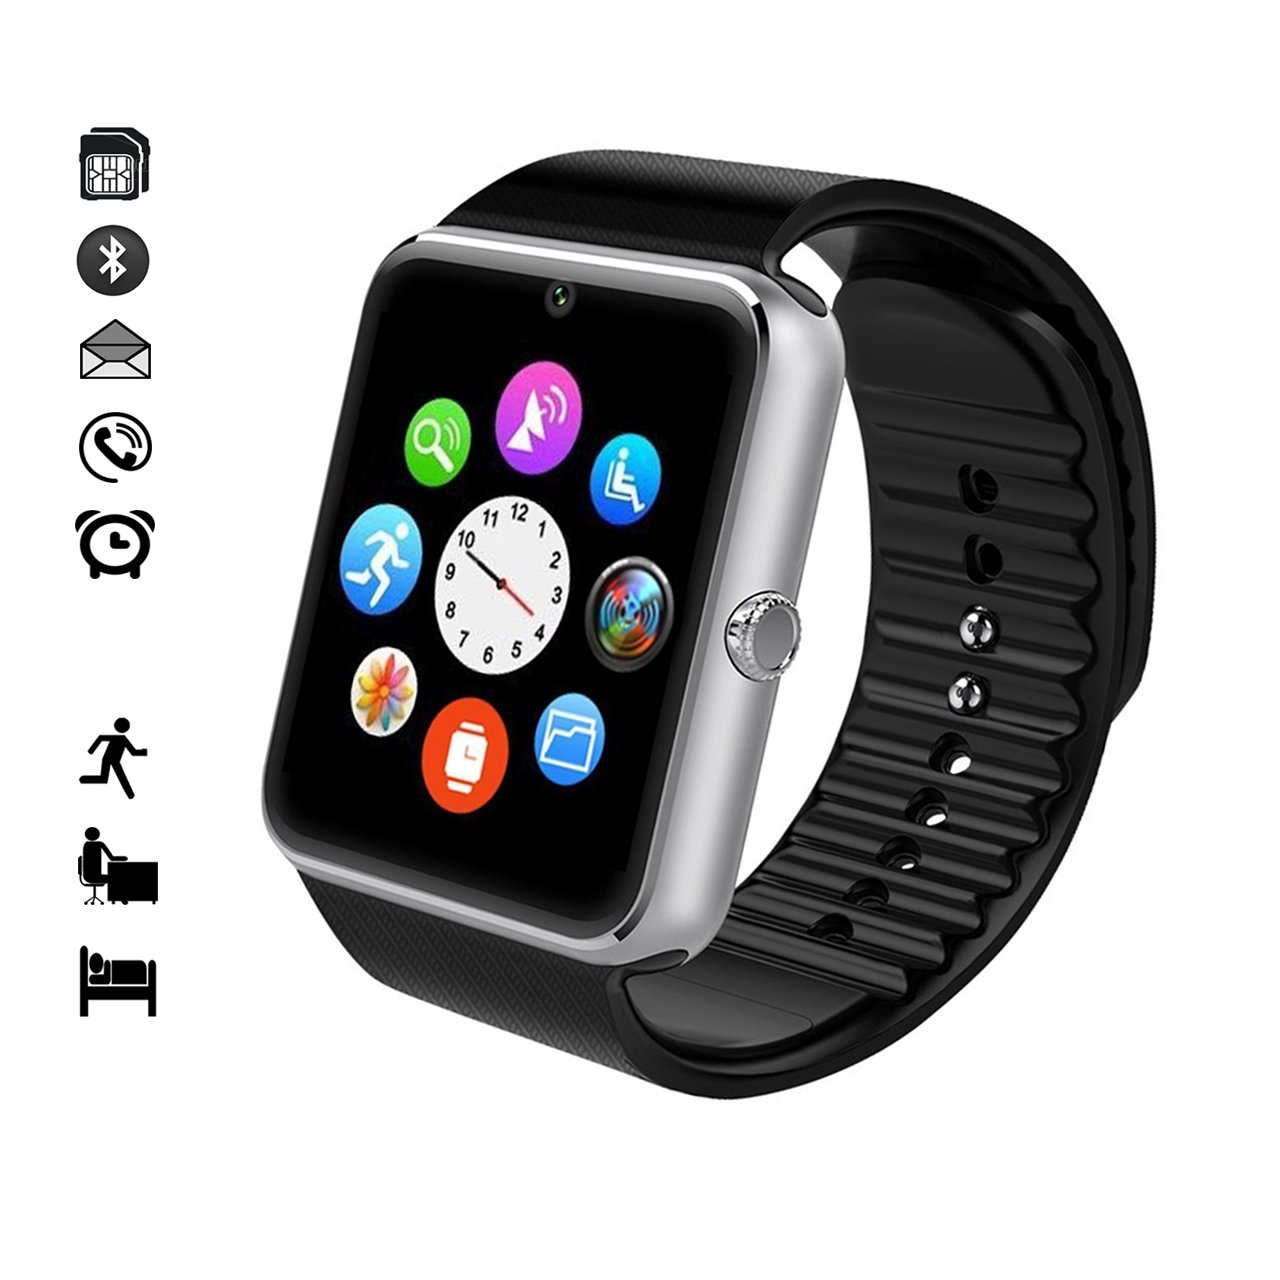 MallTEK Smartwatch Bluetooth mit TF SIM Kartenslot Amazon